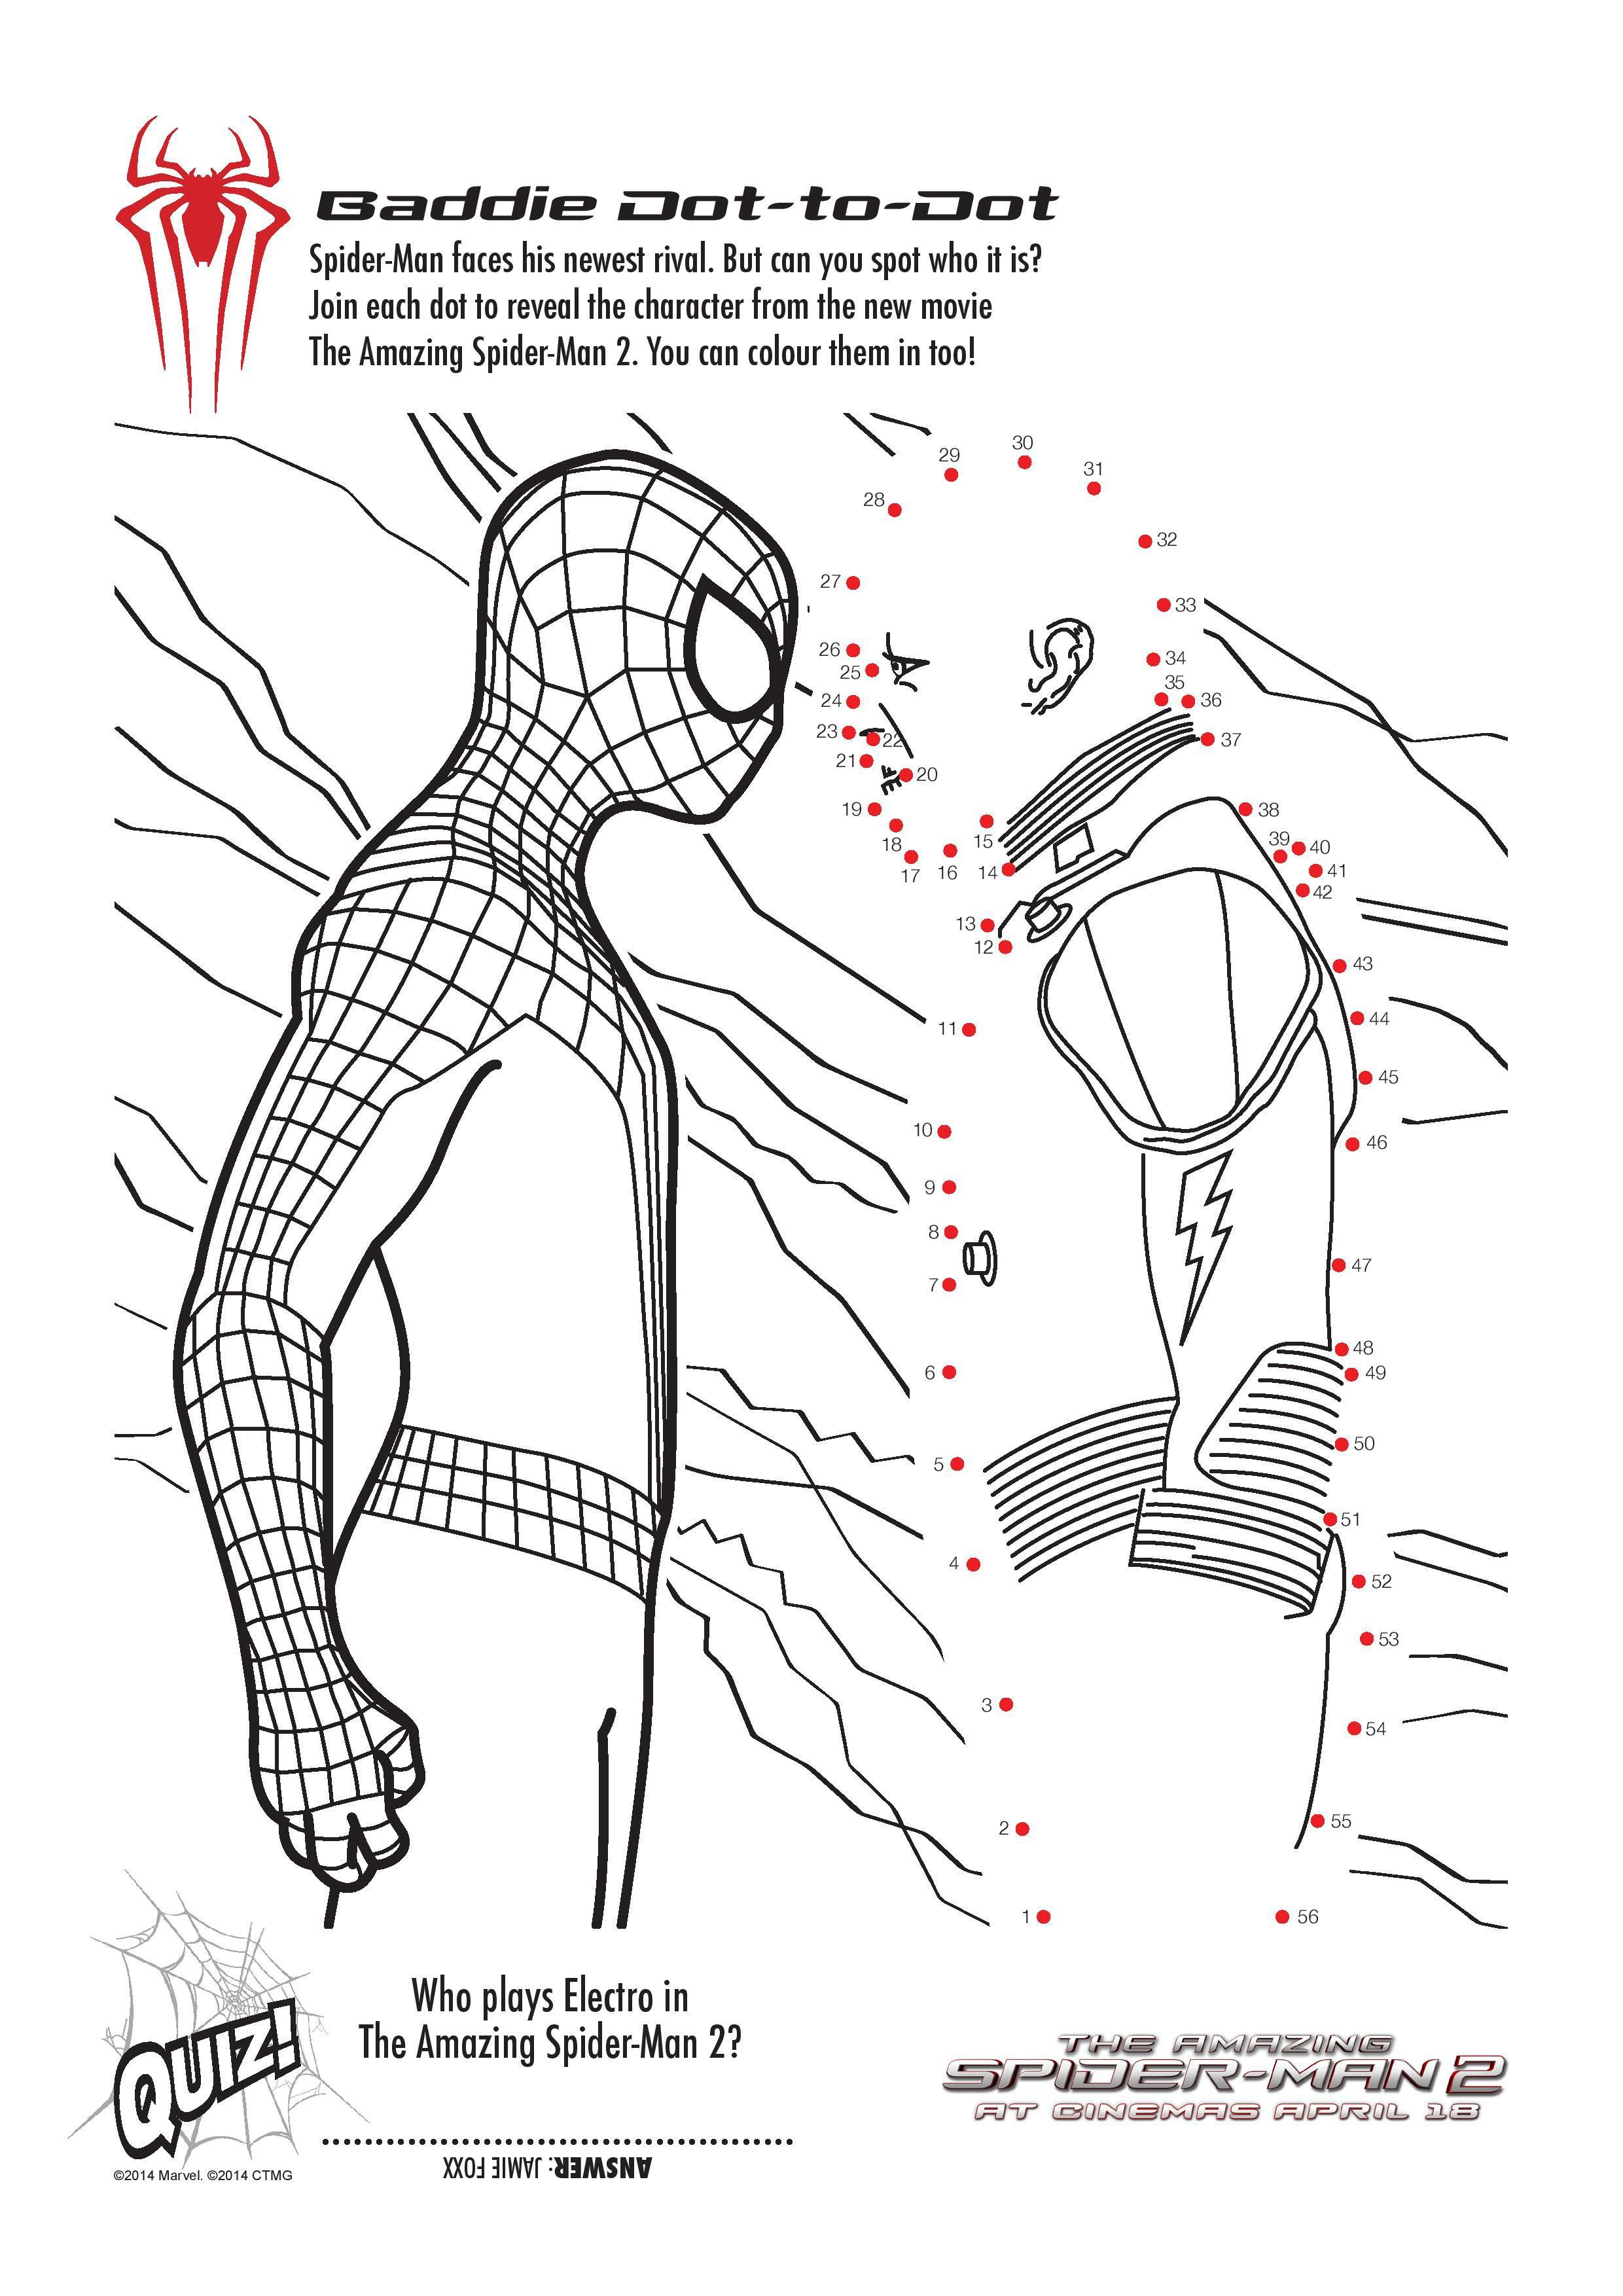 Free Printable Spiderman Colouring Pages And Activity Sheets Spiderman Coloring Super Hero Coloring Sheets Coloring Pages